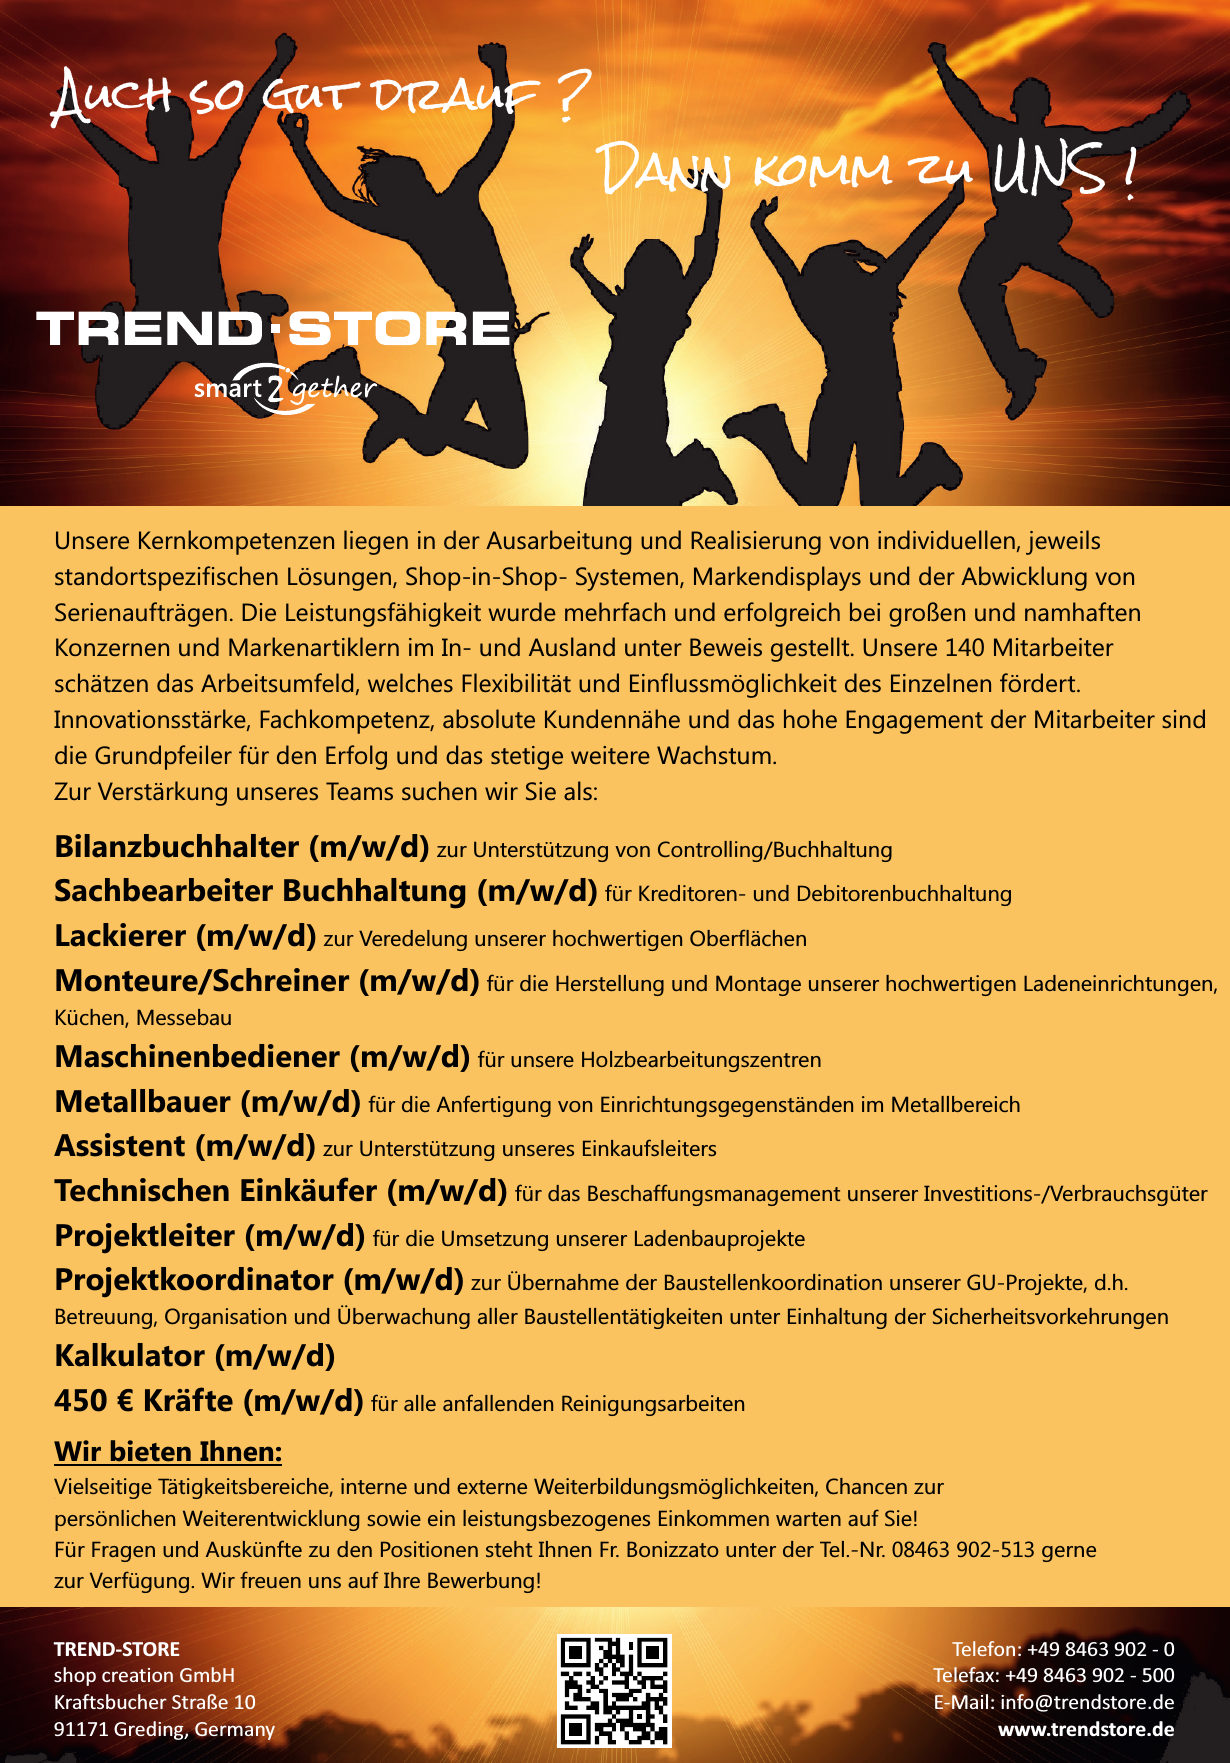 Trend Store shop creation GmbH